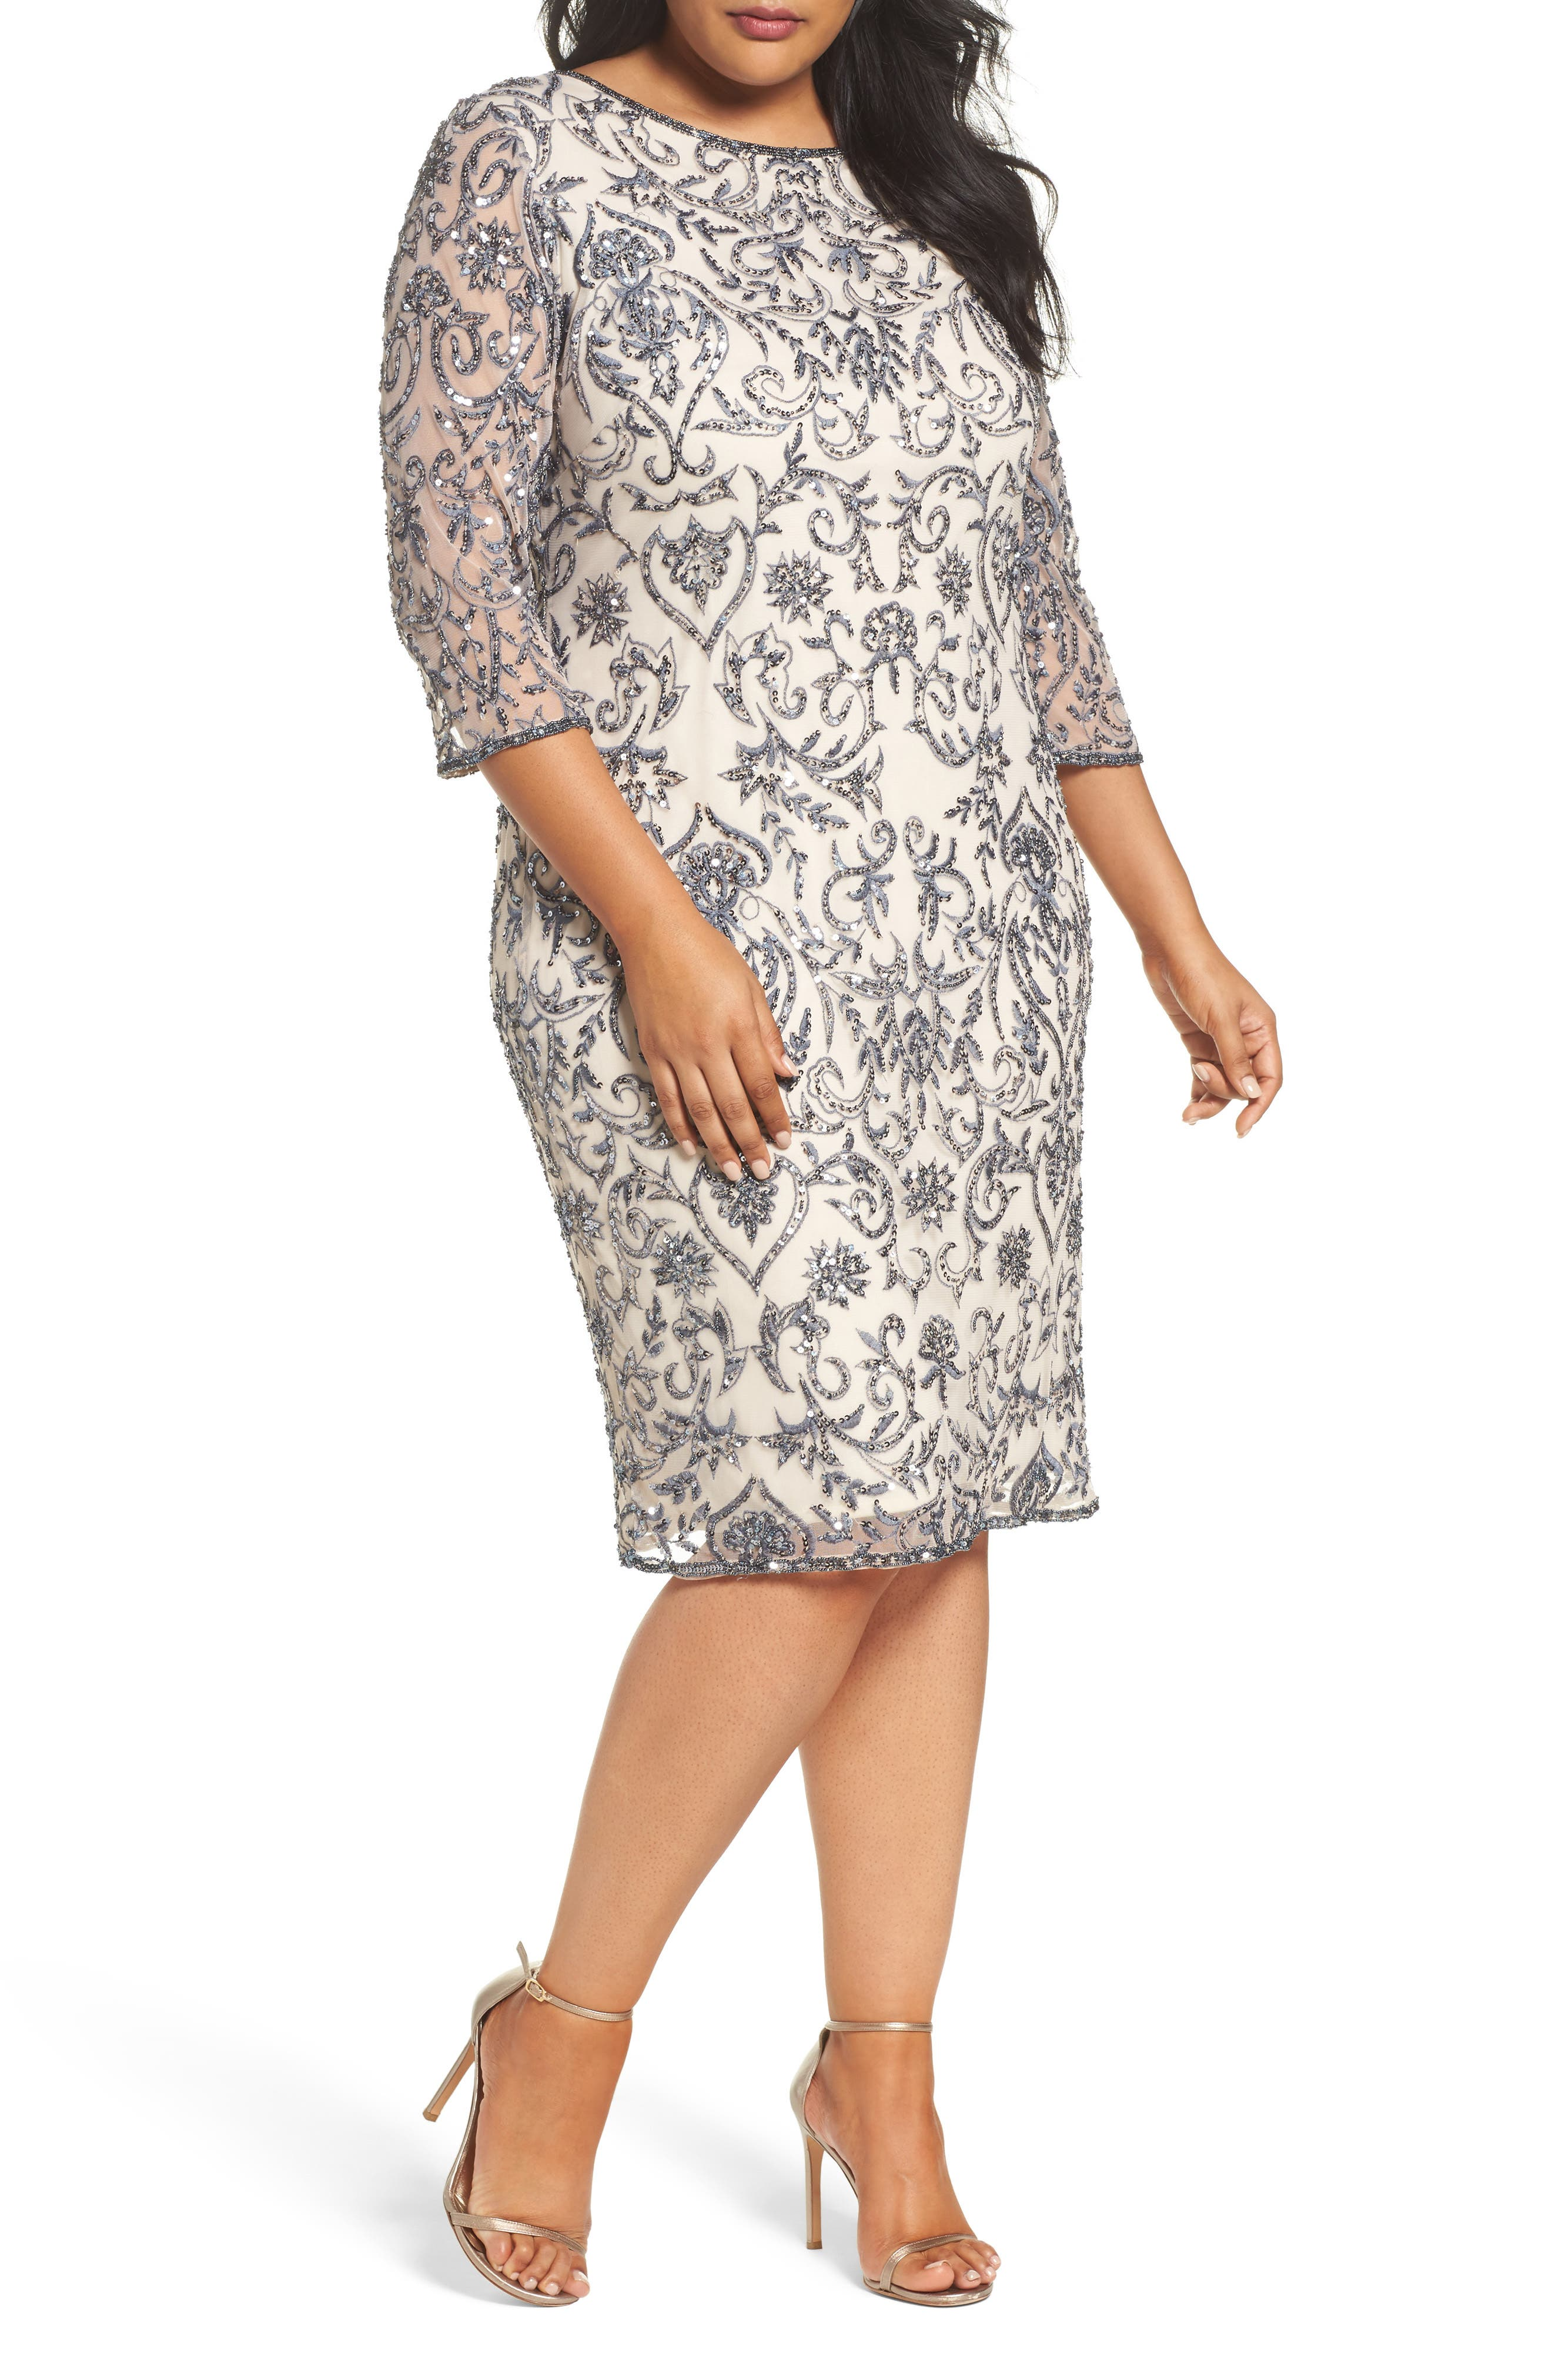 Alternate Image 1 Selected - Pisarro Nights Sequin Embroidered Sheath Dress (Plus Size)